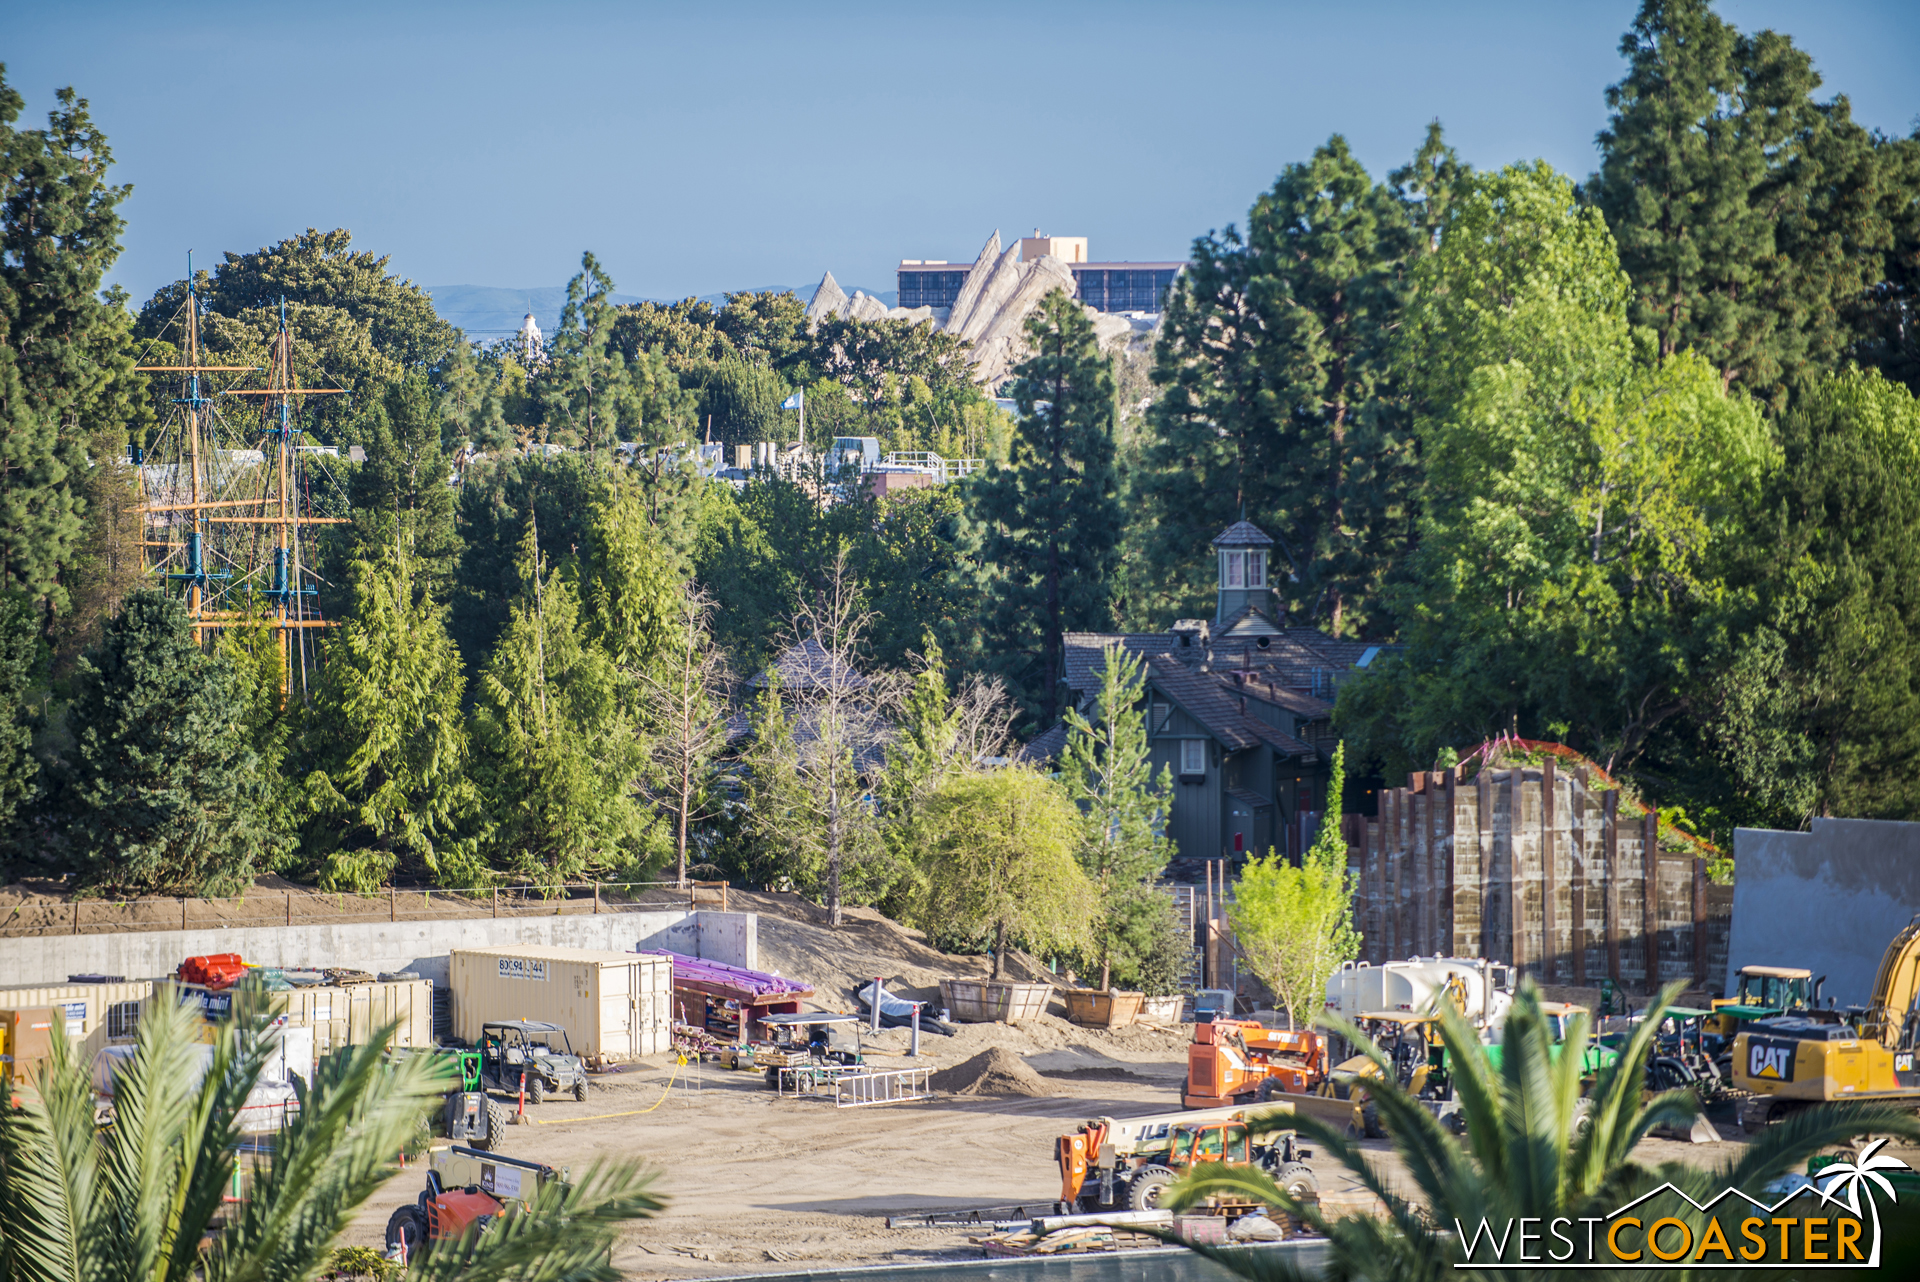 """Over at the Hungry Bear side, any visibility of progress on the """"back"""" entrance into """"Star Wars"""" Land has been obscured by all those dang trees they've added to the raised berm that separates the Rivers of America from """"Star Wars"""" Land."""